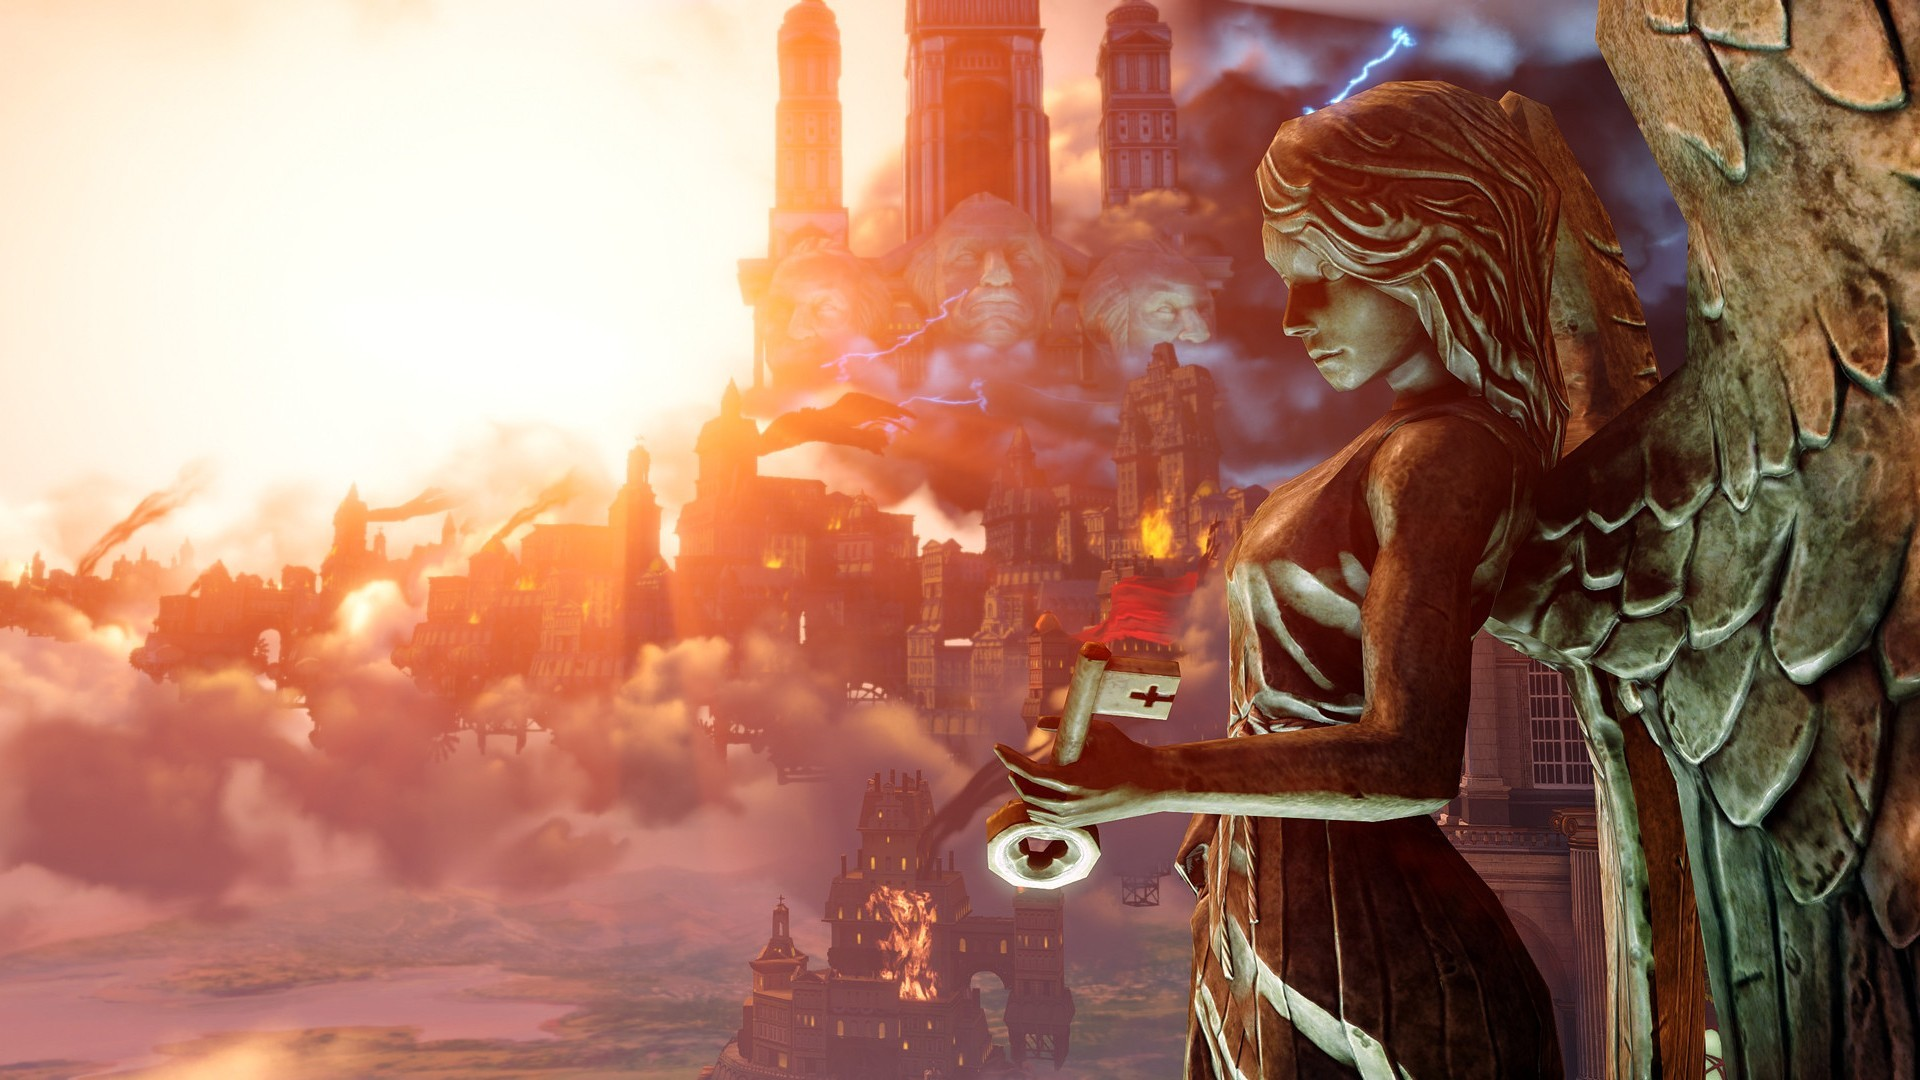 Bioshock Infinite HD Wallpaper 10   1920 X 1080 stmednet 1920x1080